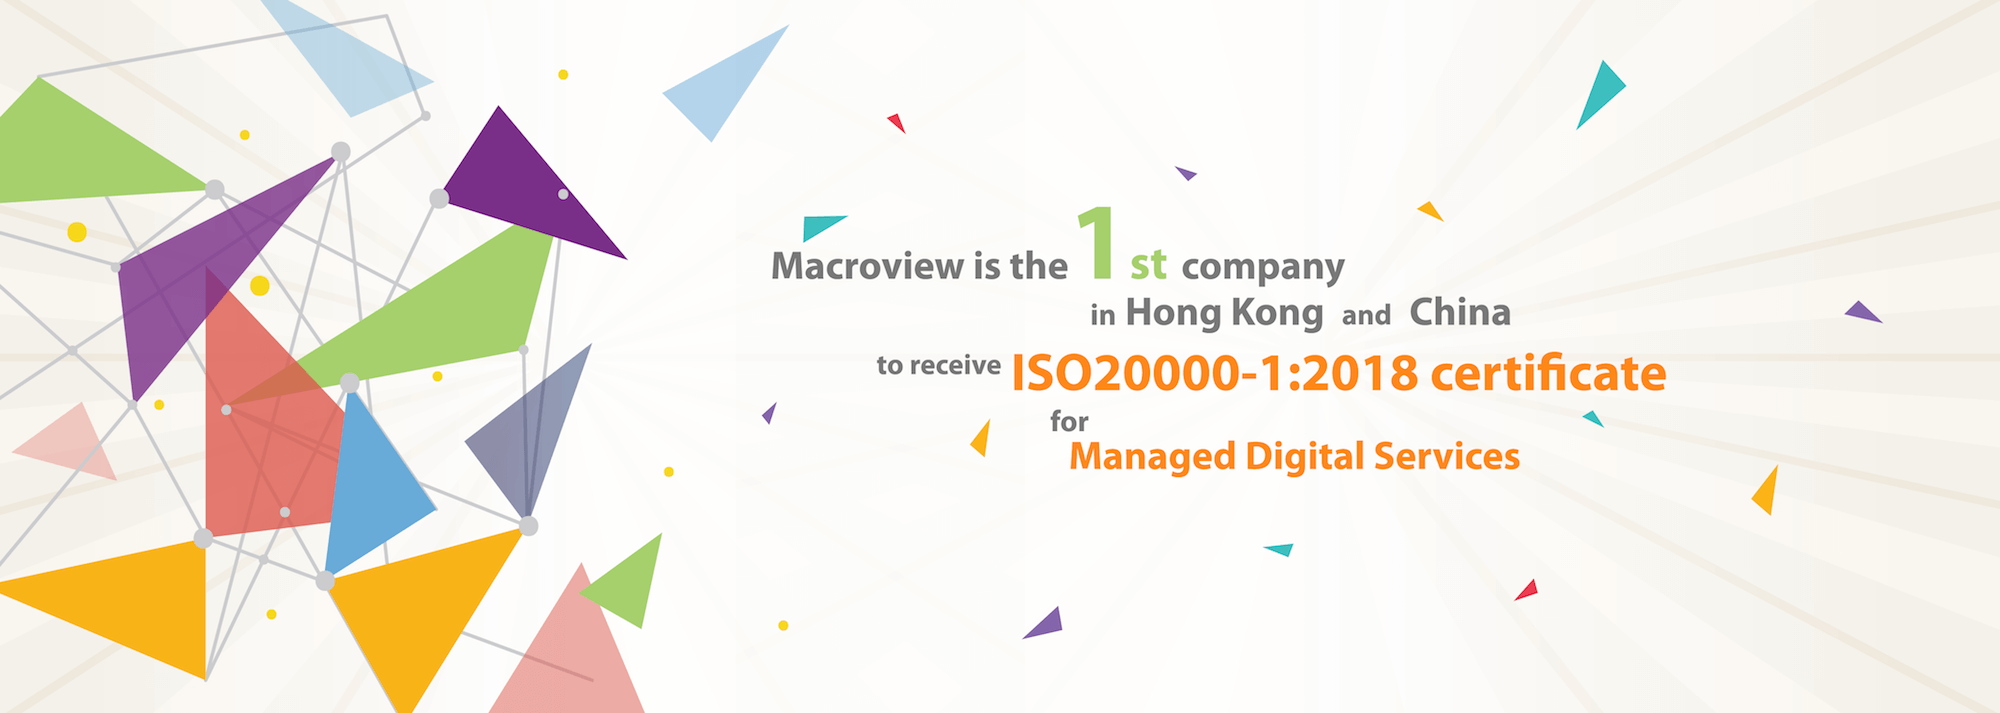 Macroview is the first company in Hong Kong and China to receive ISO 20000-1:2018 certificate for Managed Digital Services